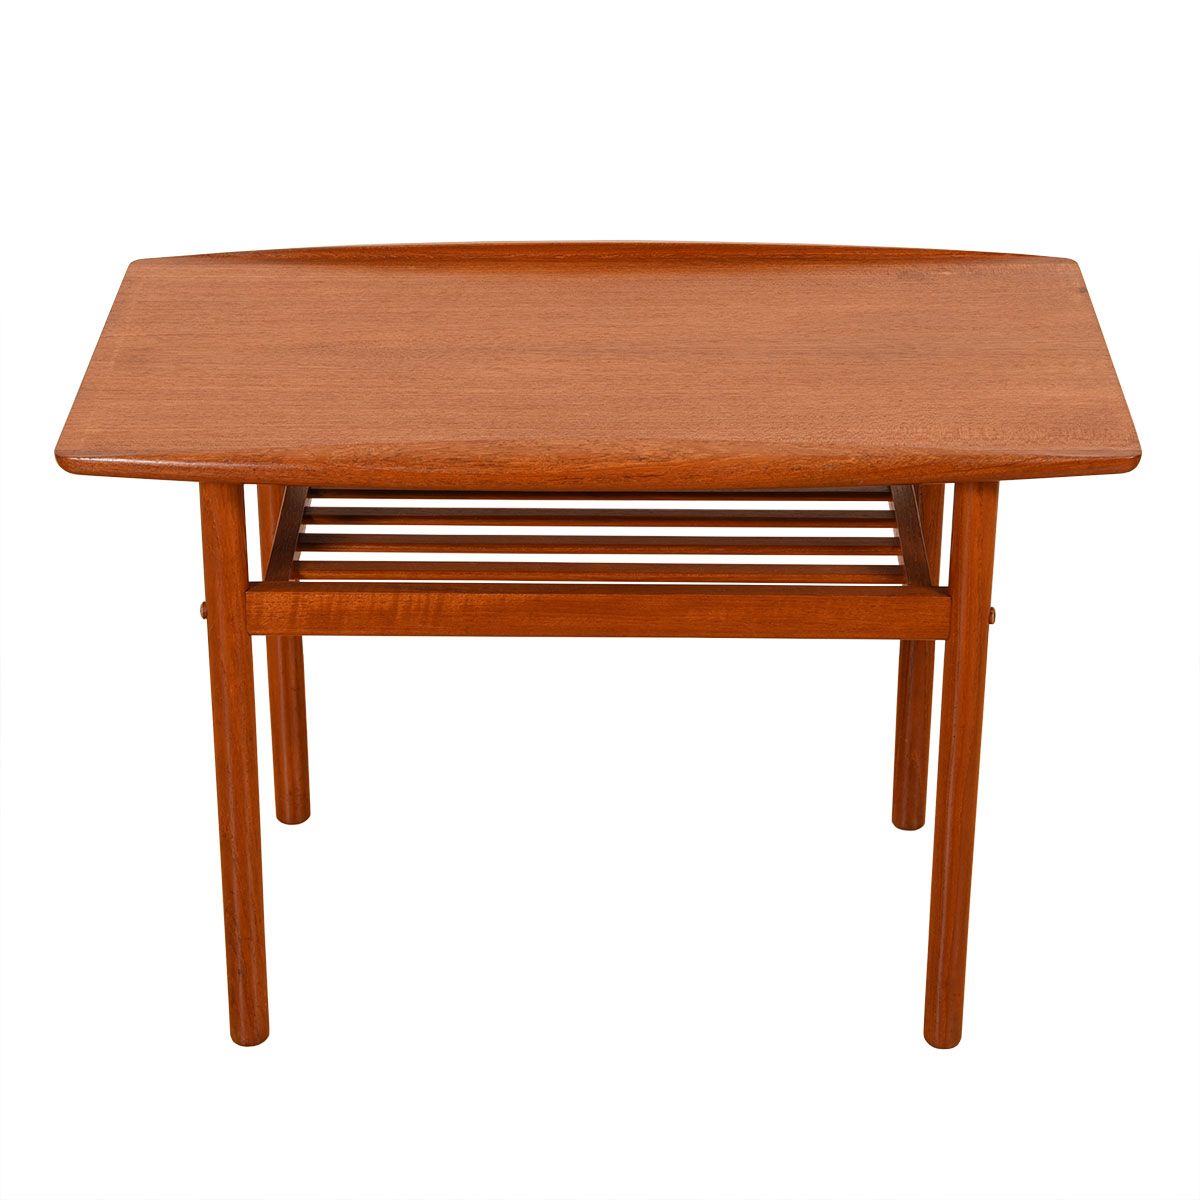 Teak End / Accent Table with Raised Lip Top + Slatted Shelf